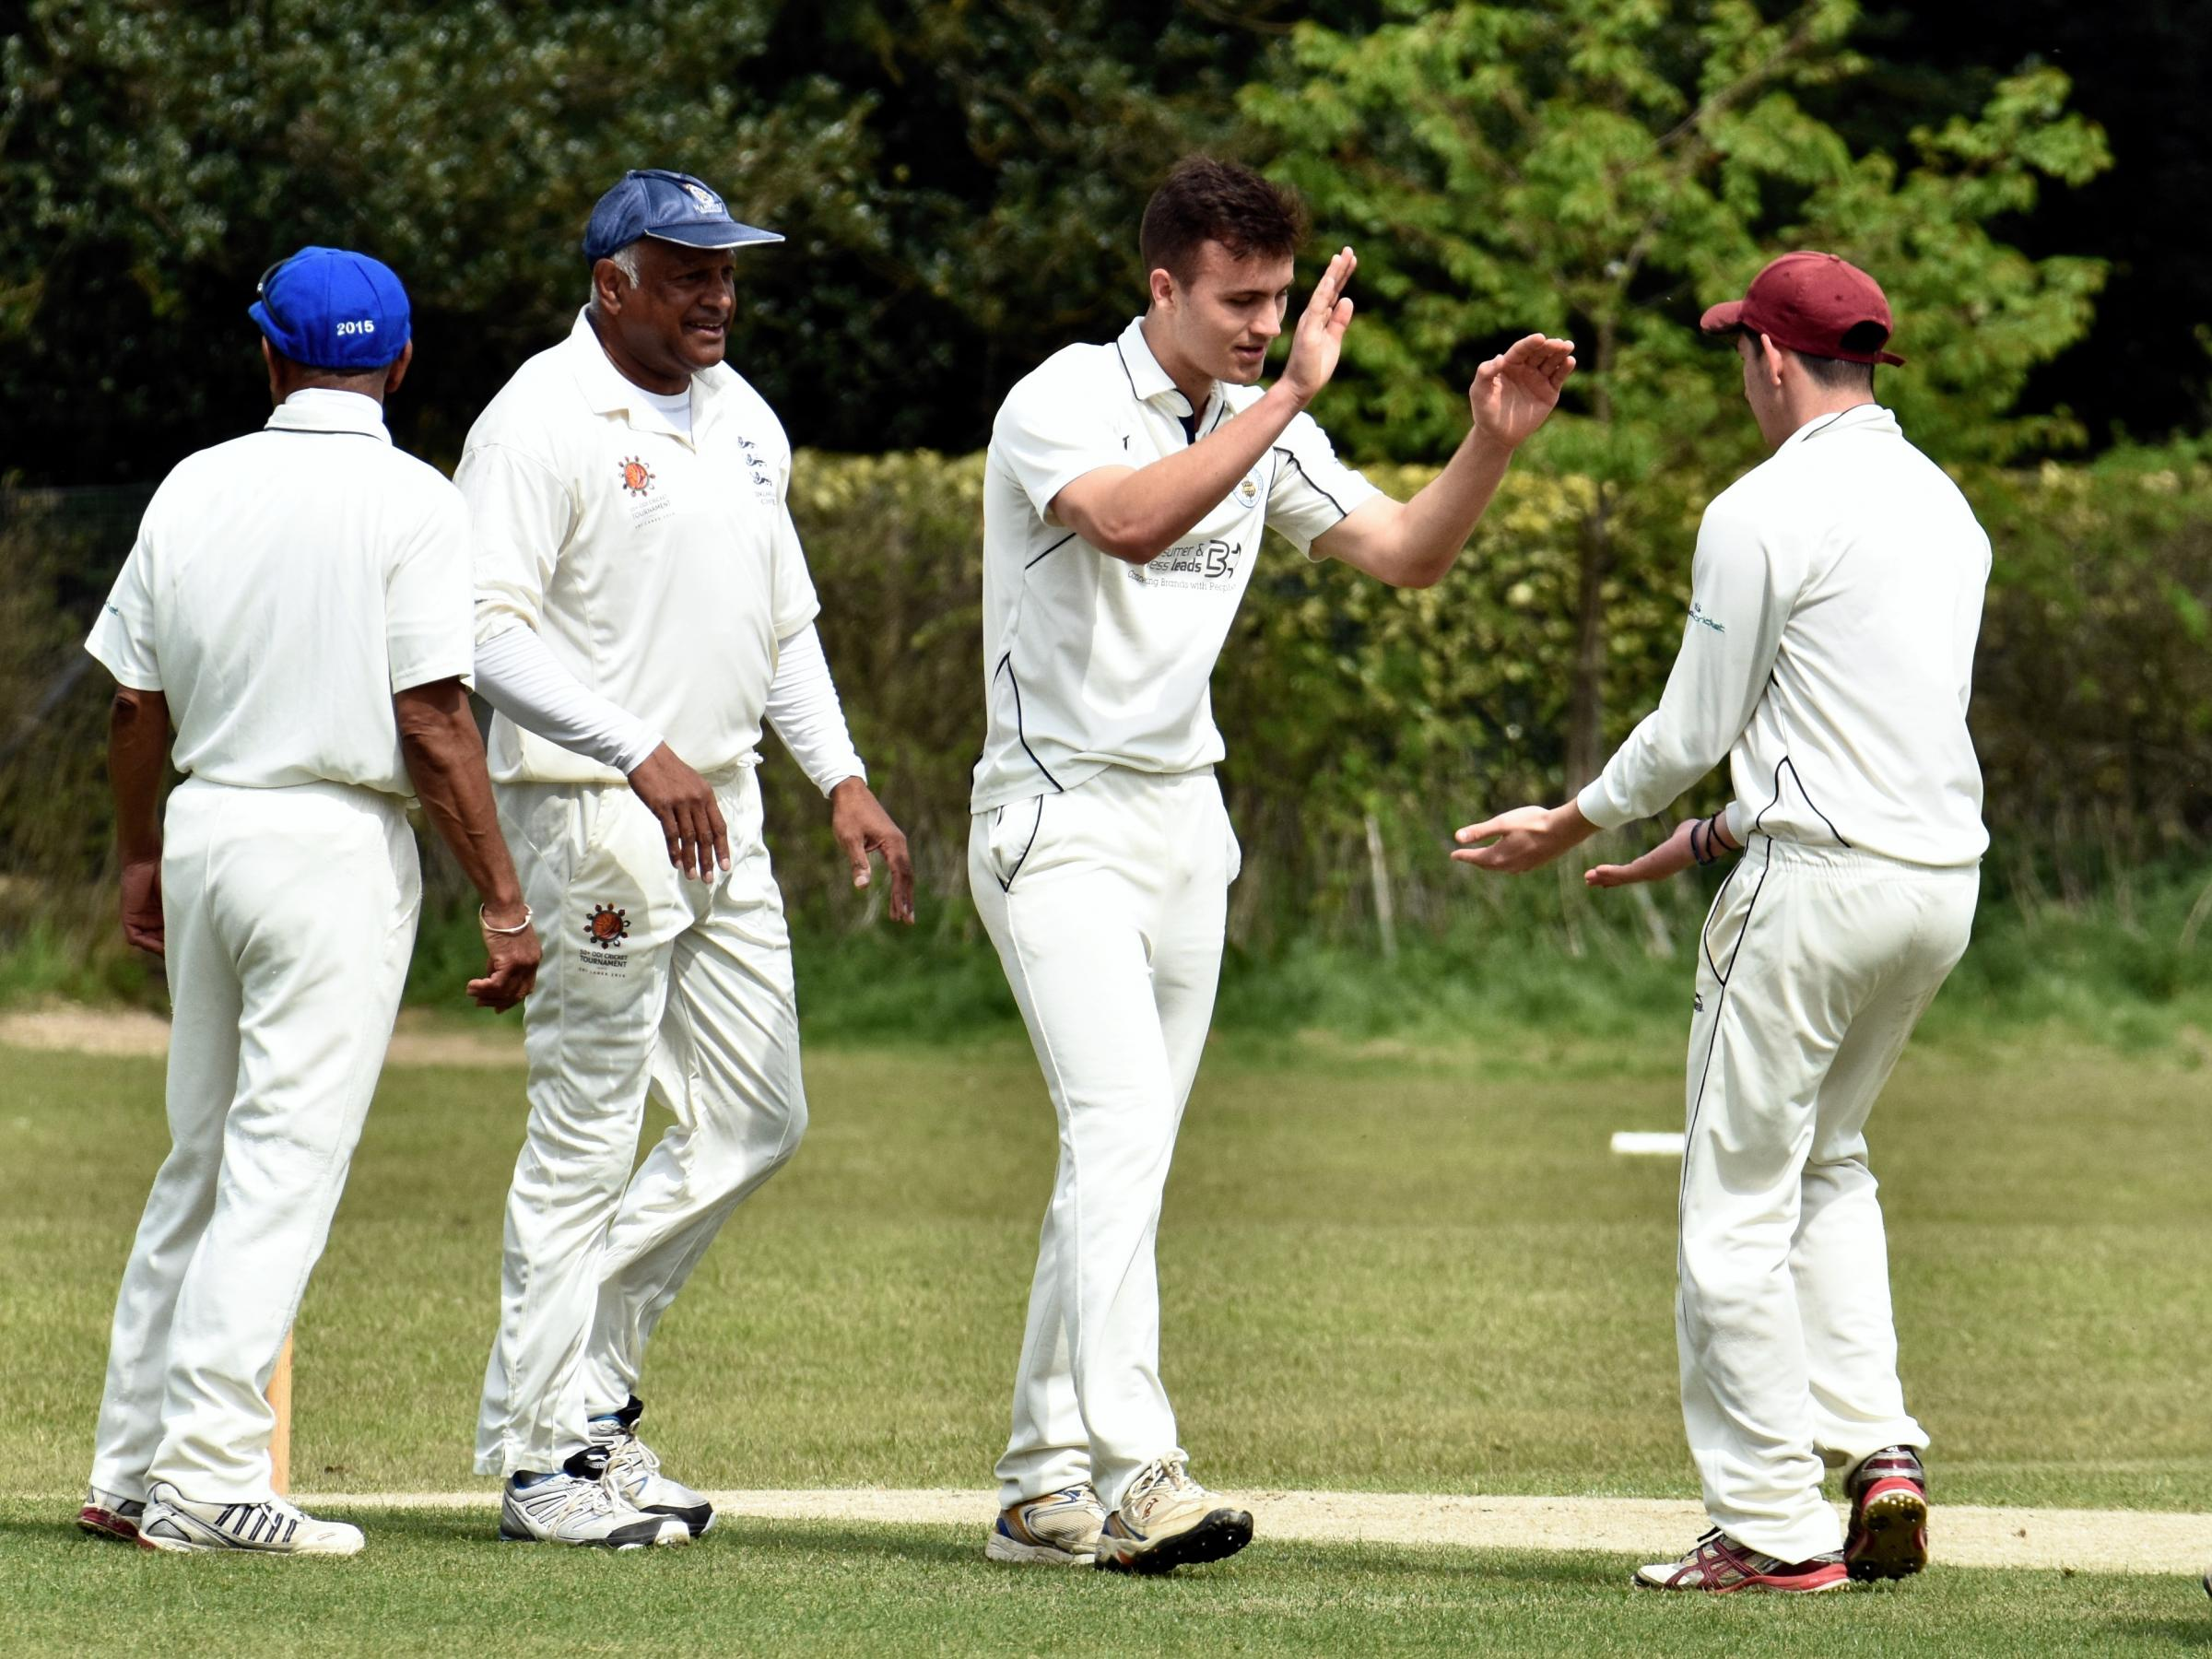 Basingstoke IIIs celebrate a wicket against Hobos